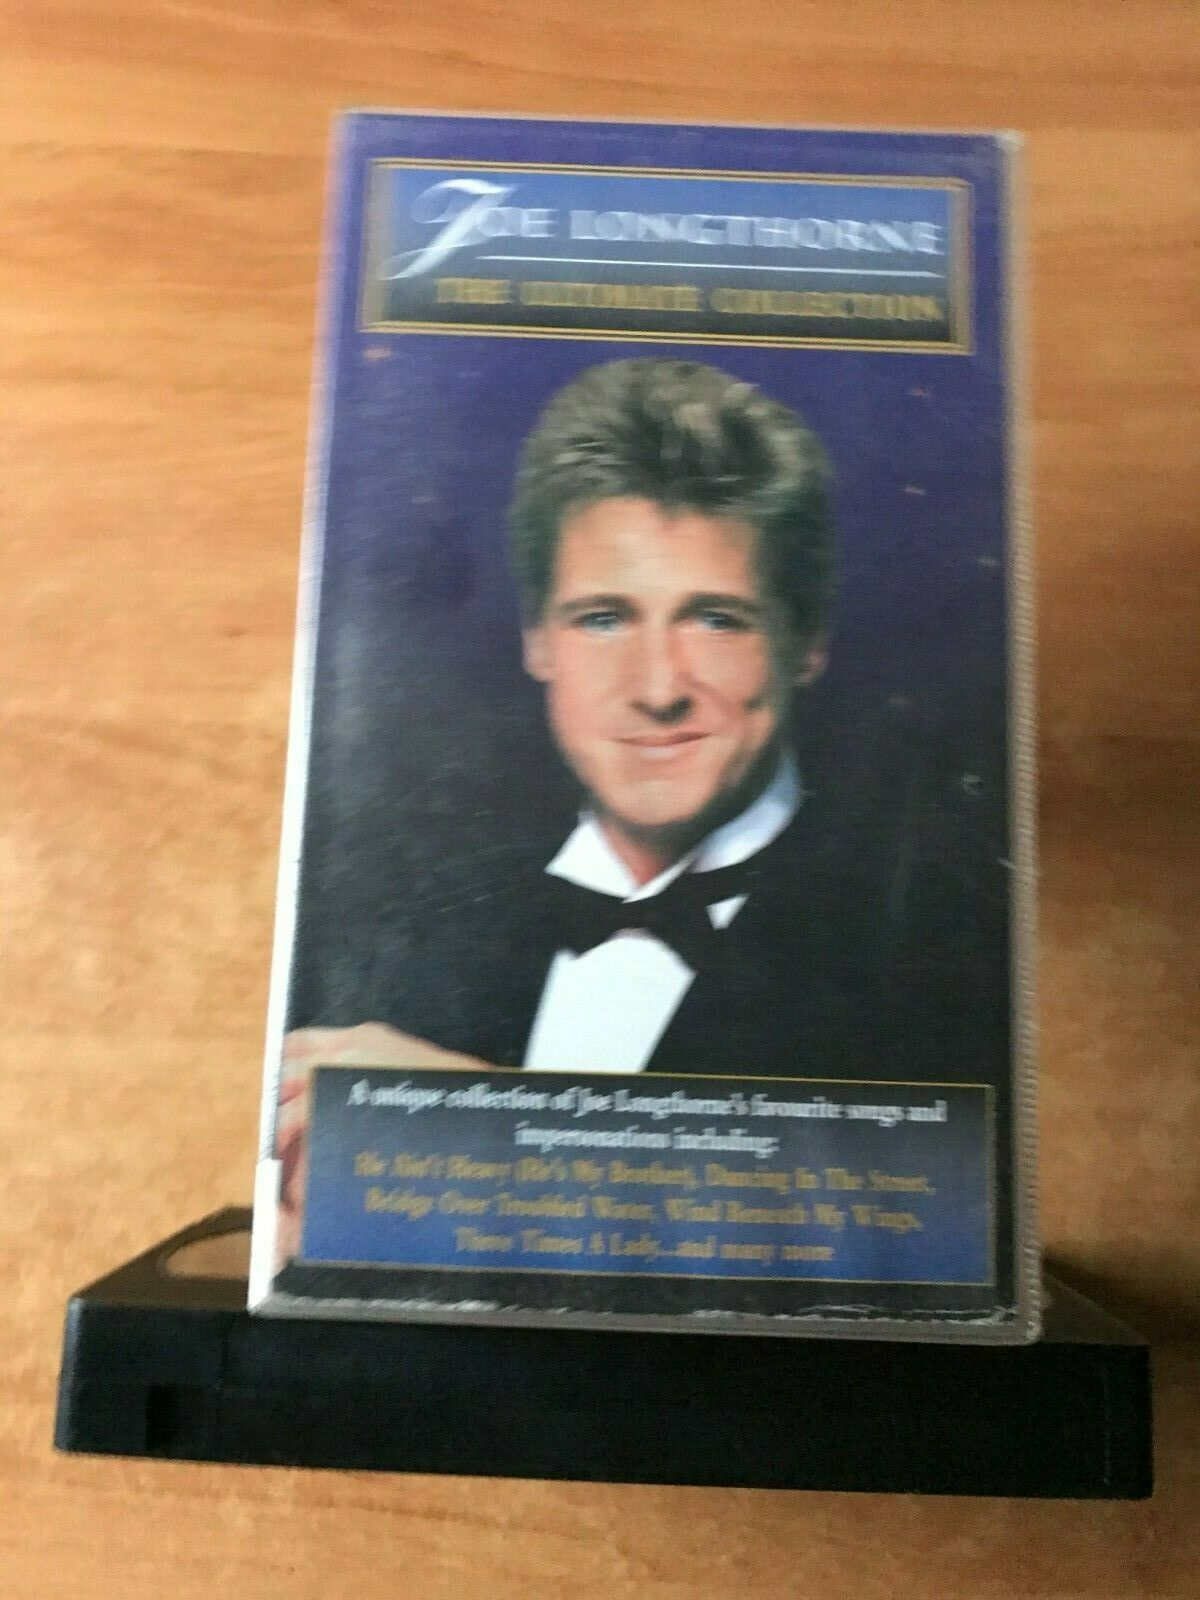 Joe Longthorne: The Ultimate Collection - Favourite Songs - Music - Pal VHS